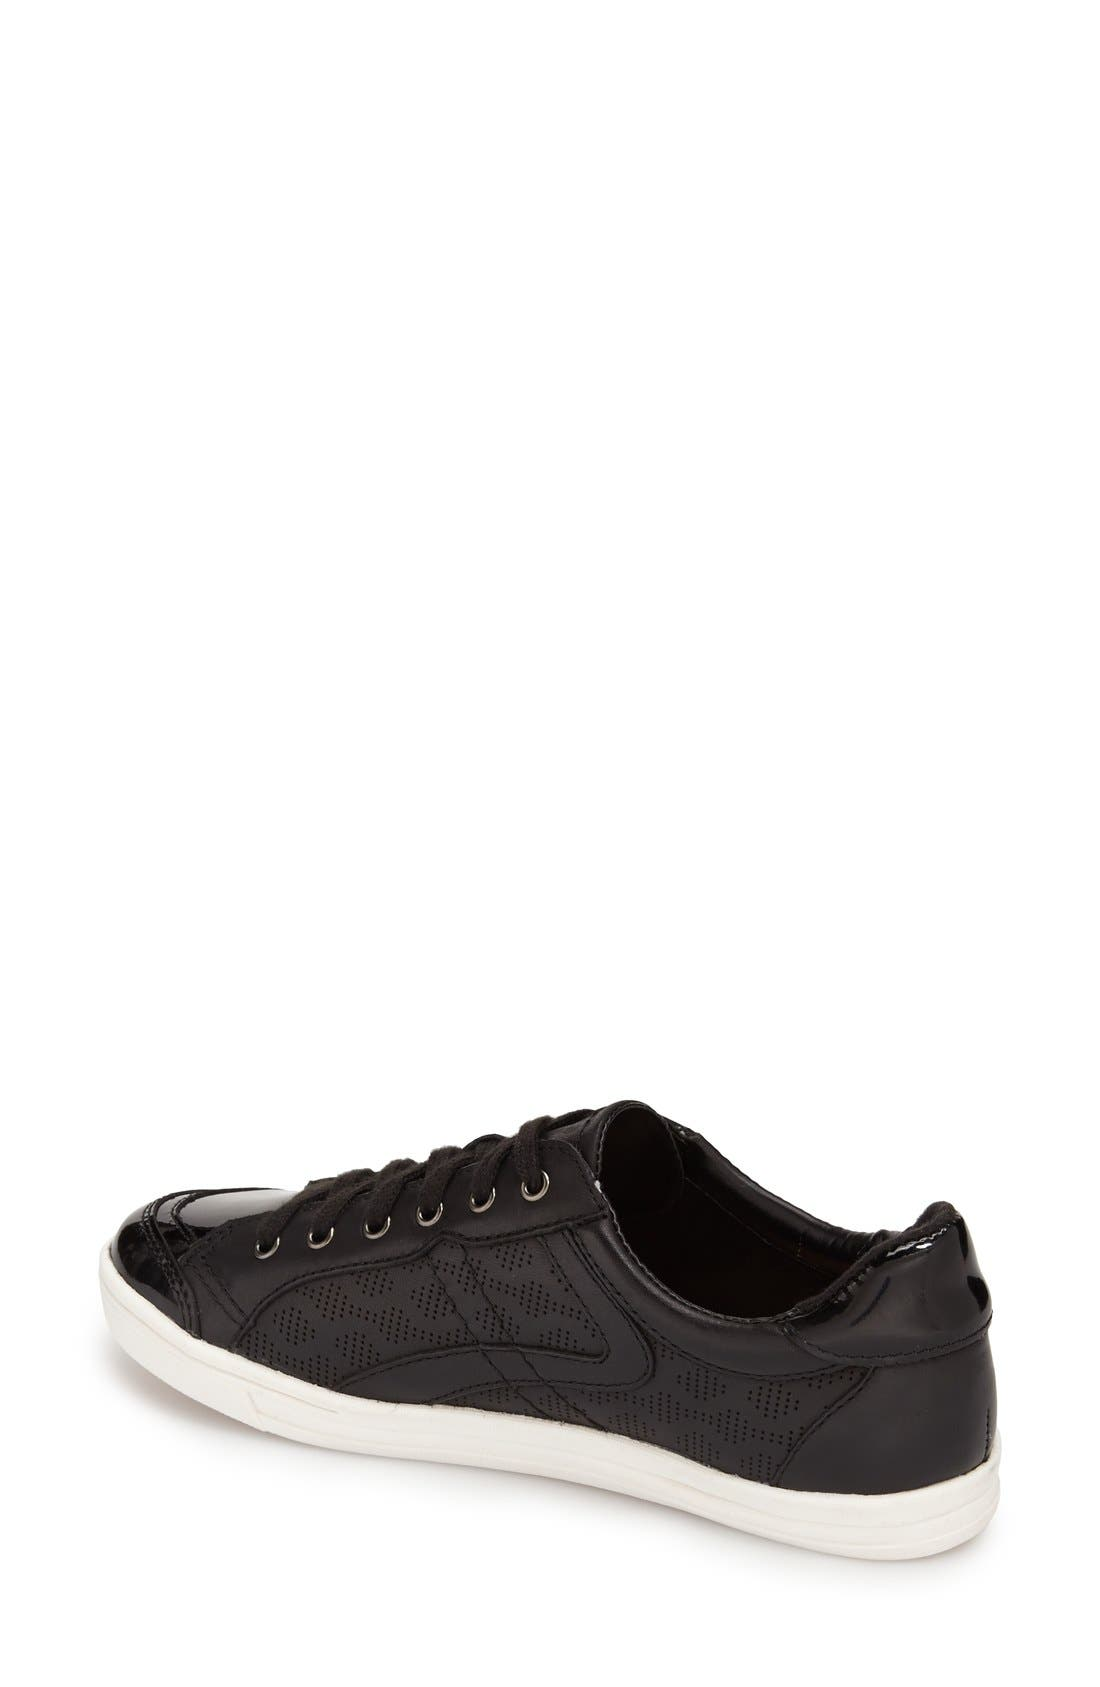 Alternate Image 2  - Earth® 'Quince' Leather Sneaker (Women)